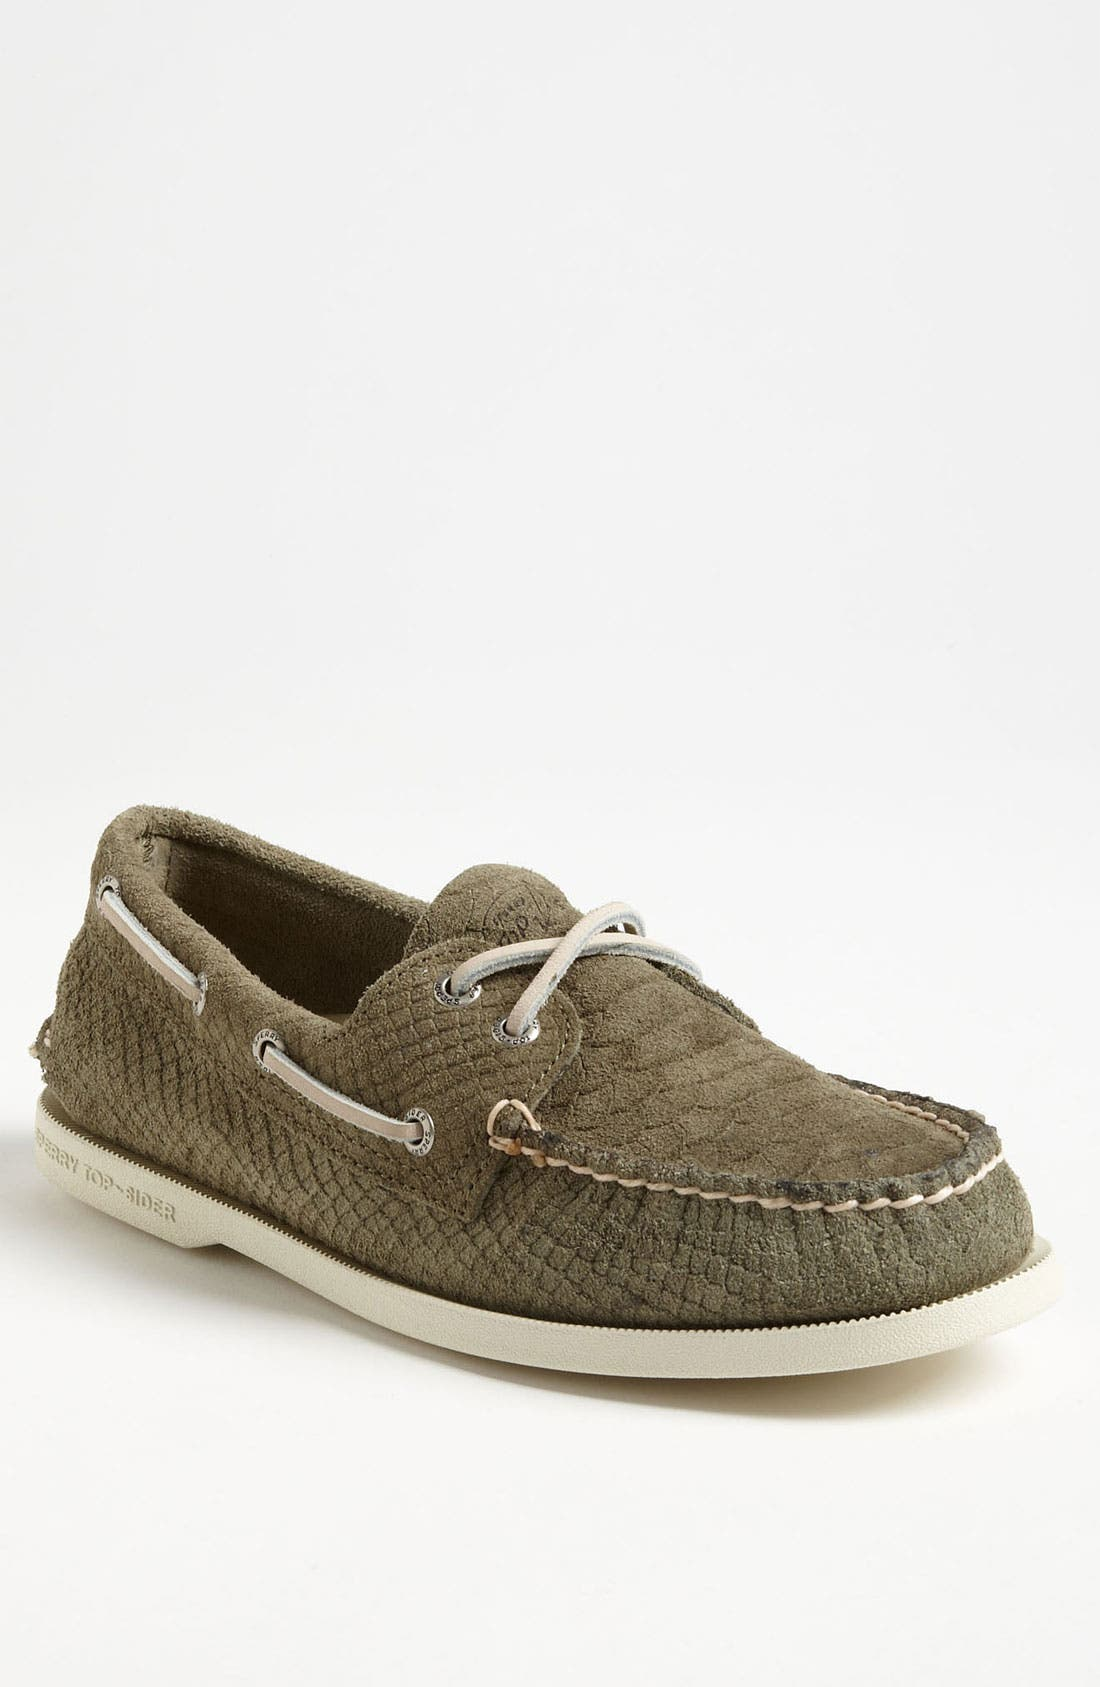 Alternate Image 1 Selected - Sperry Top-Sider® 'Authentic Original' Snake Embossed Boat Shoe (Men) (Online Only)